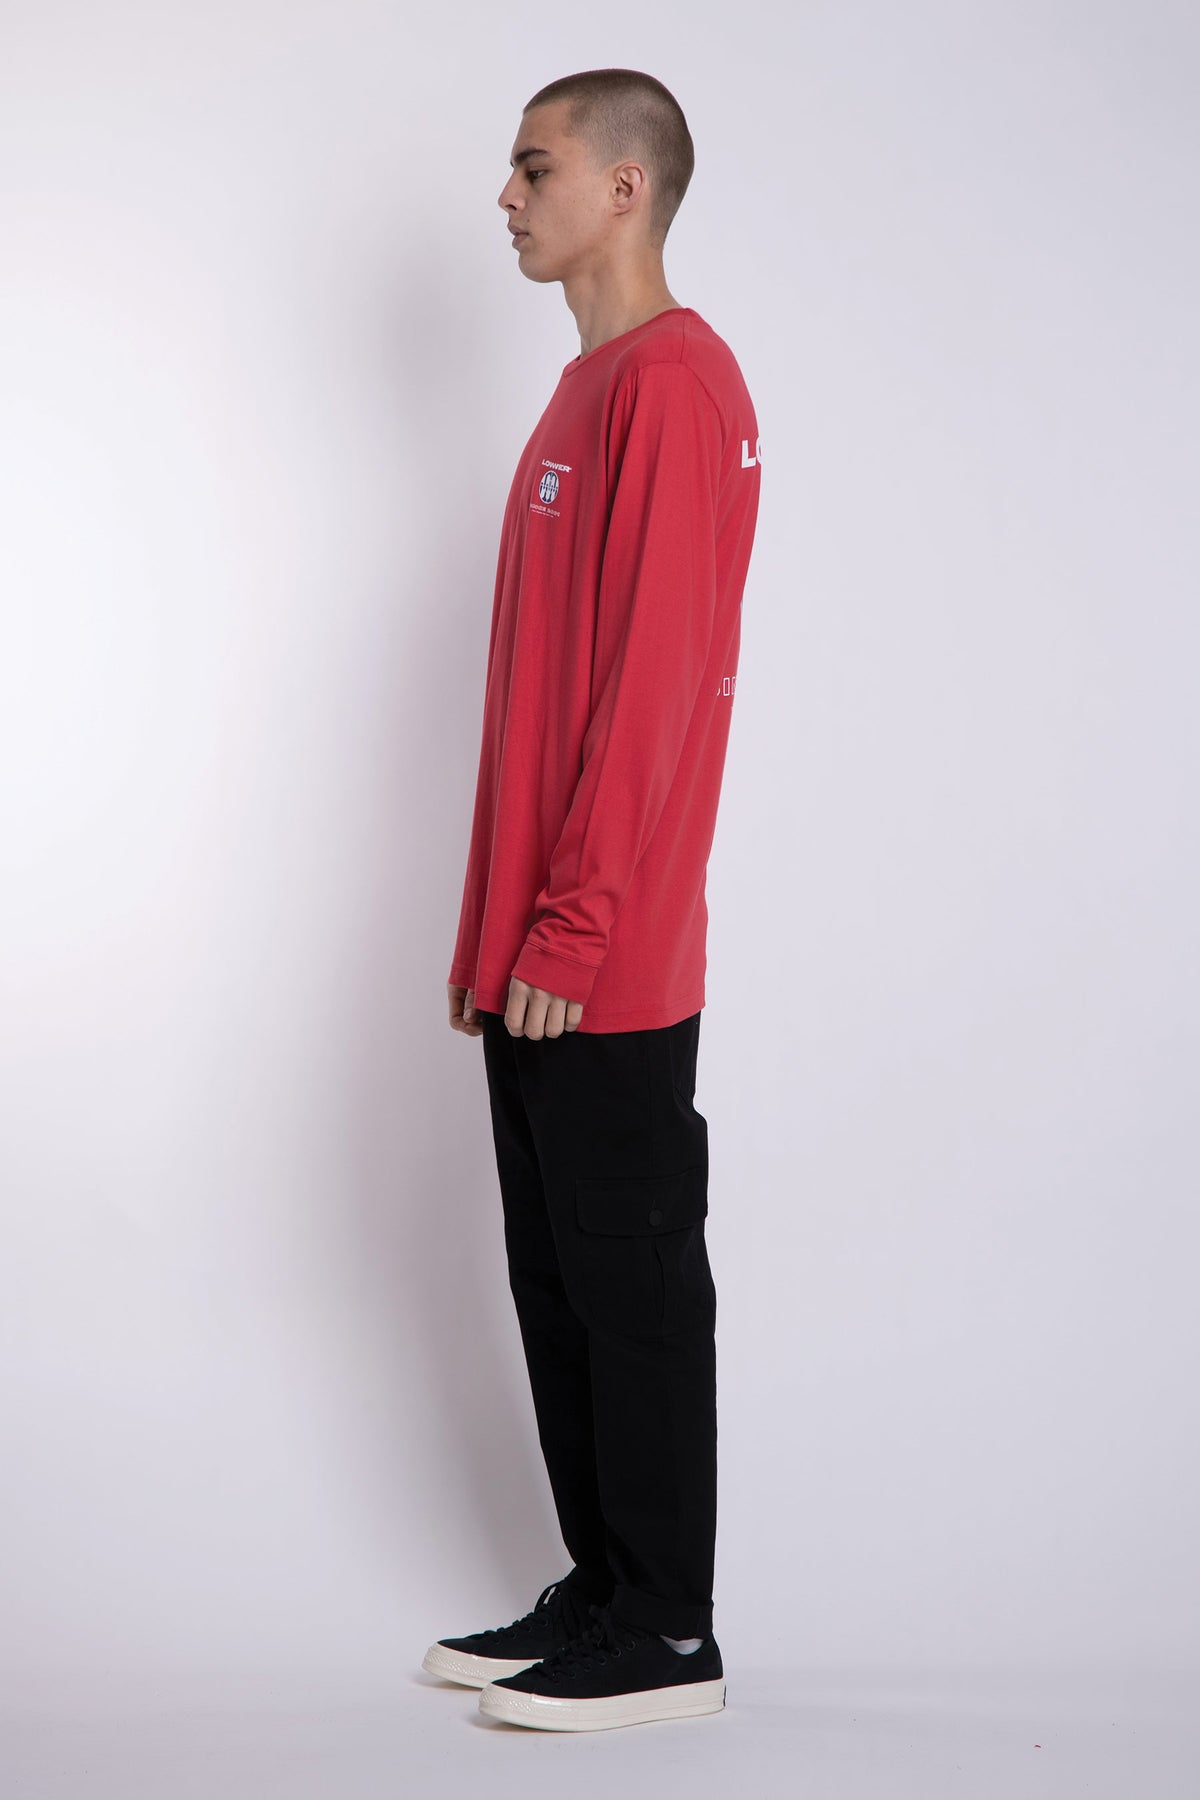 Blicky QRS LS Tee - Red